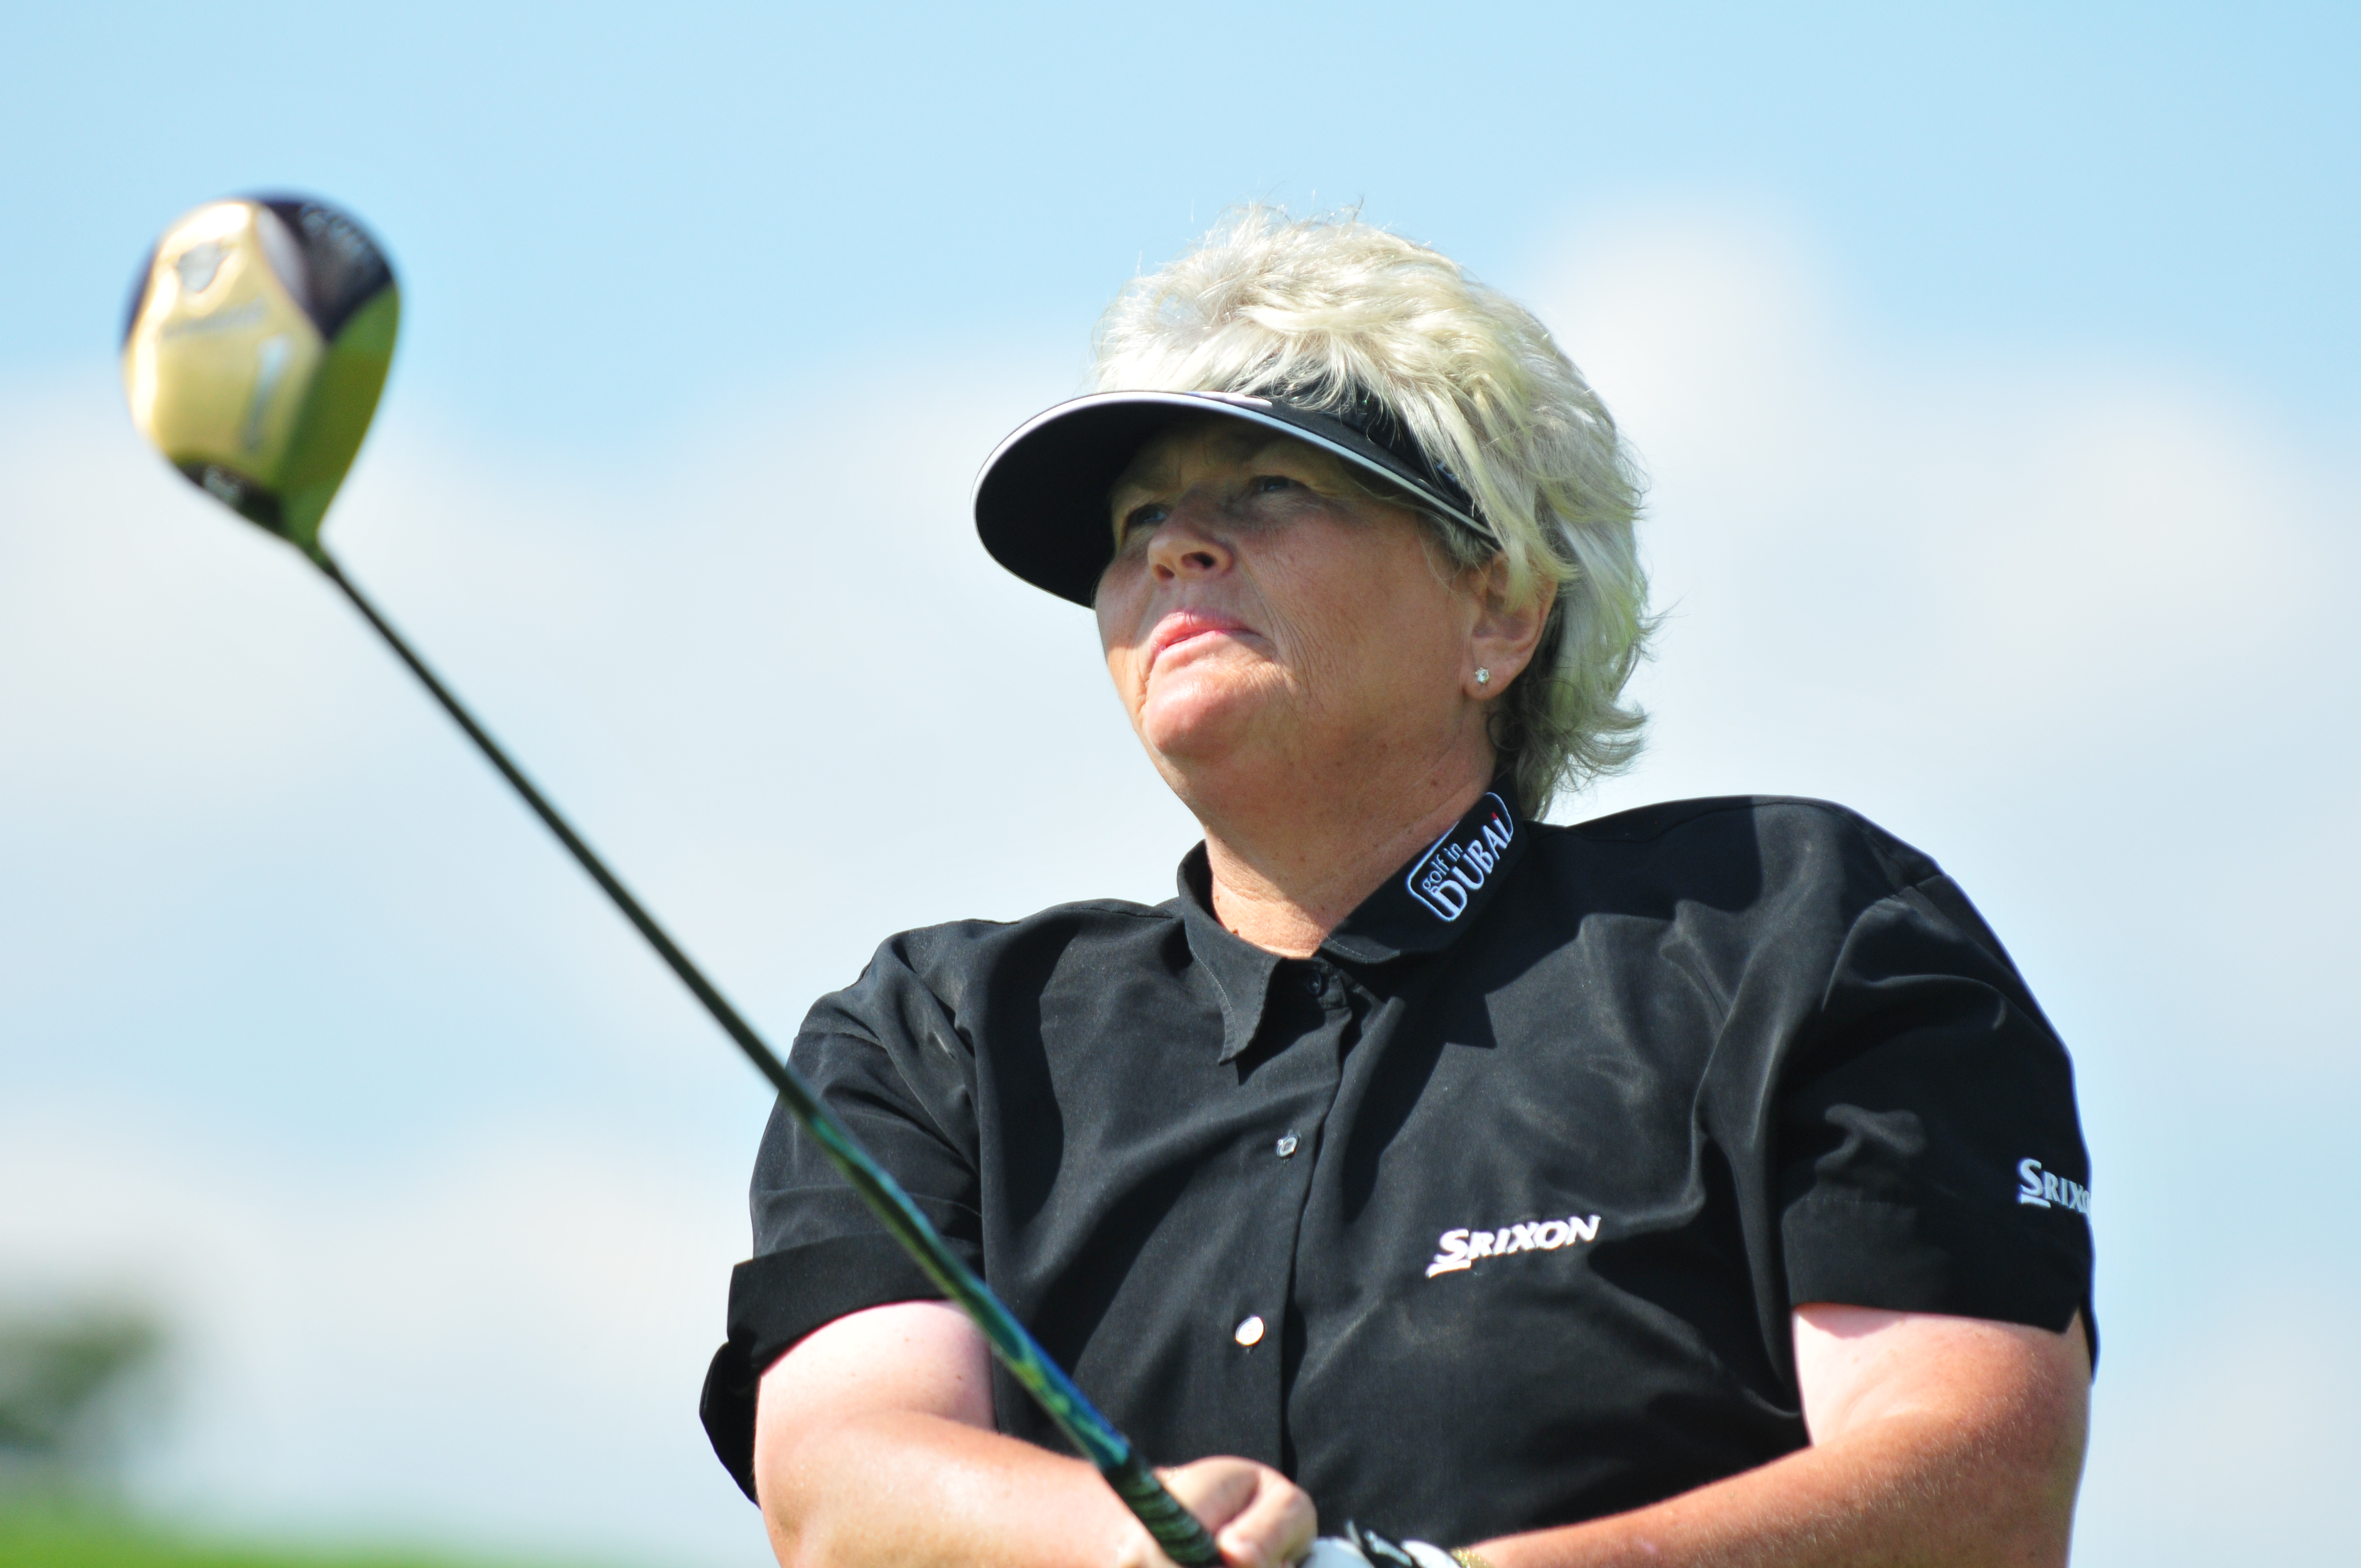 Laura Davies to be Inducted into Hall of Fame in 2015